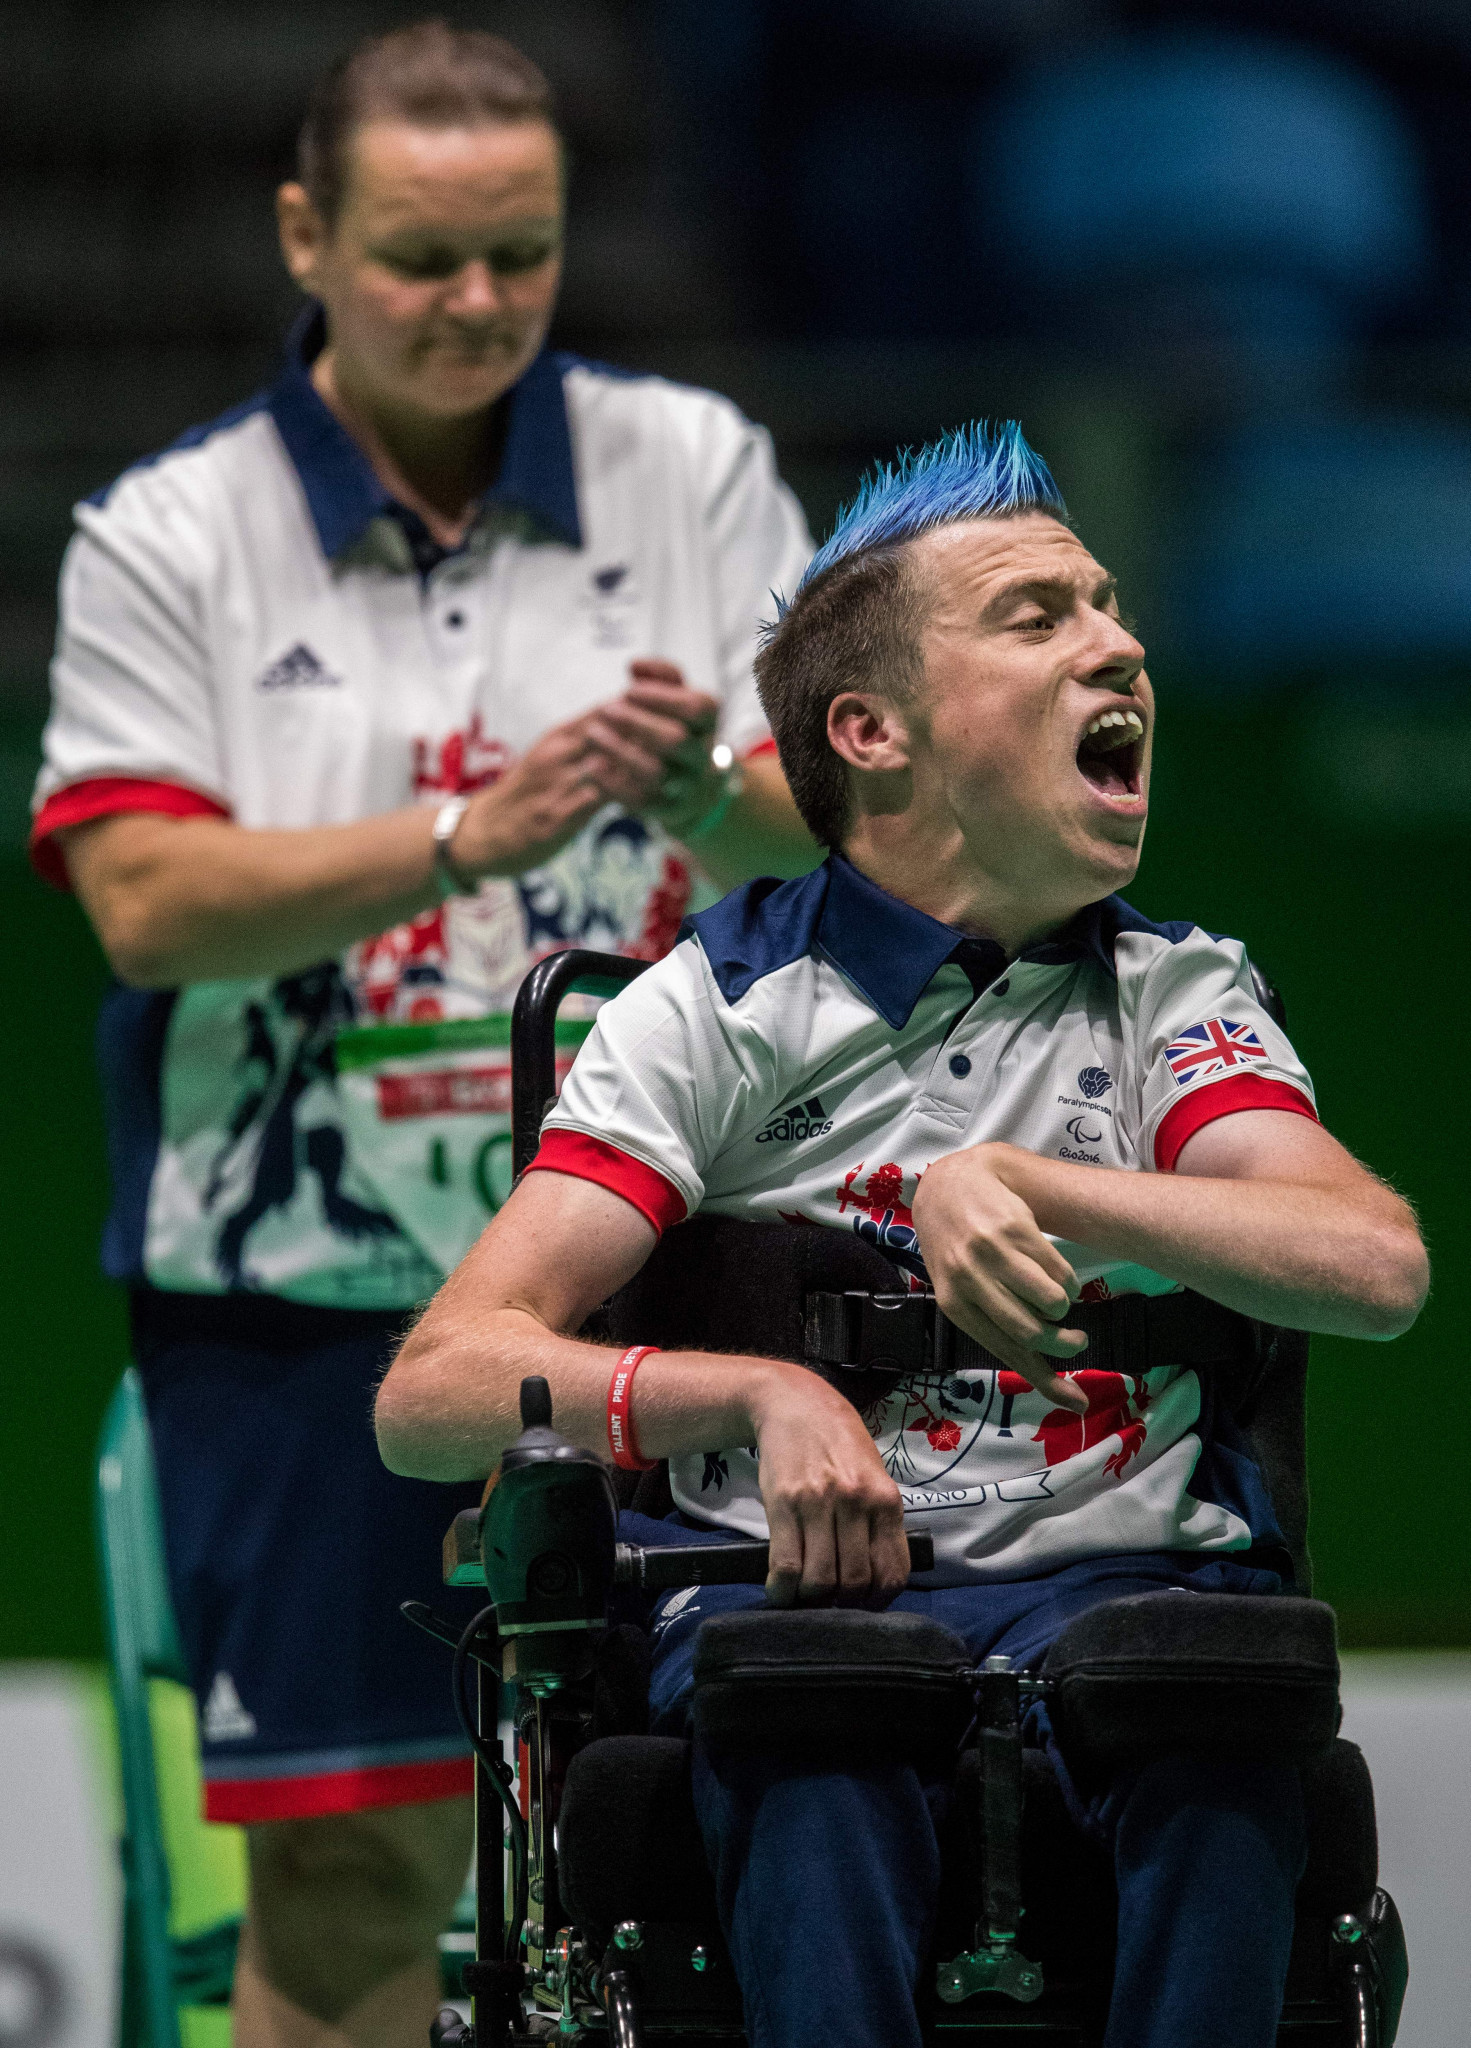 Britain's David Smith, pictured en-route to winning boccia gold at the Rio 2016 Paralympics, is seeking further success at the World Boccia Championships that will take place in Liverpool this August ©Getty Images